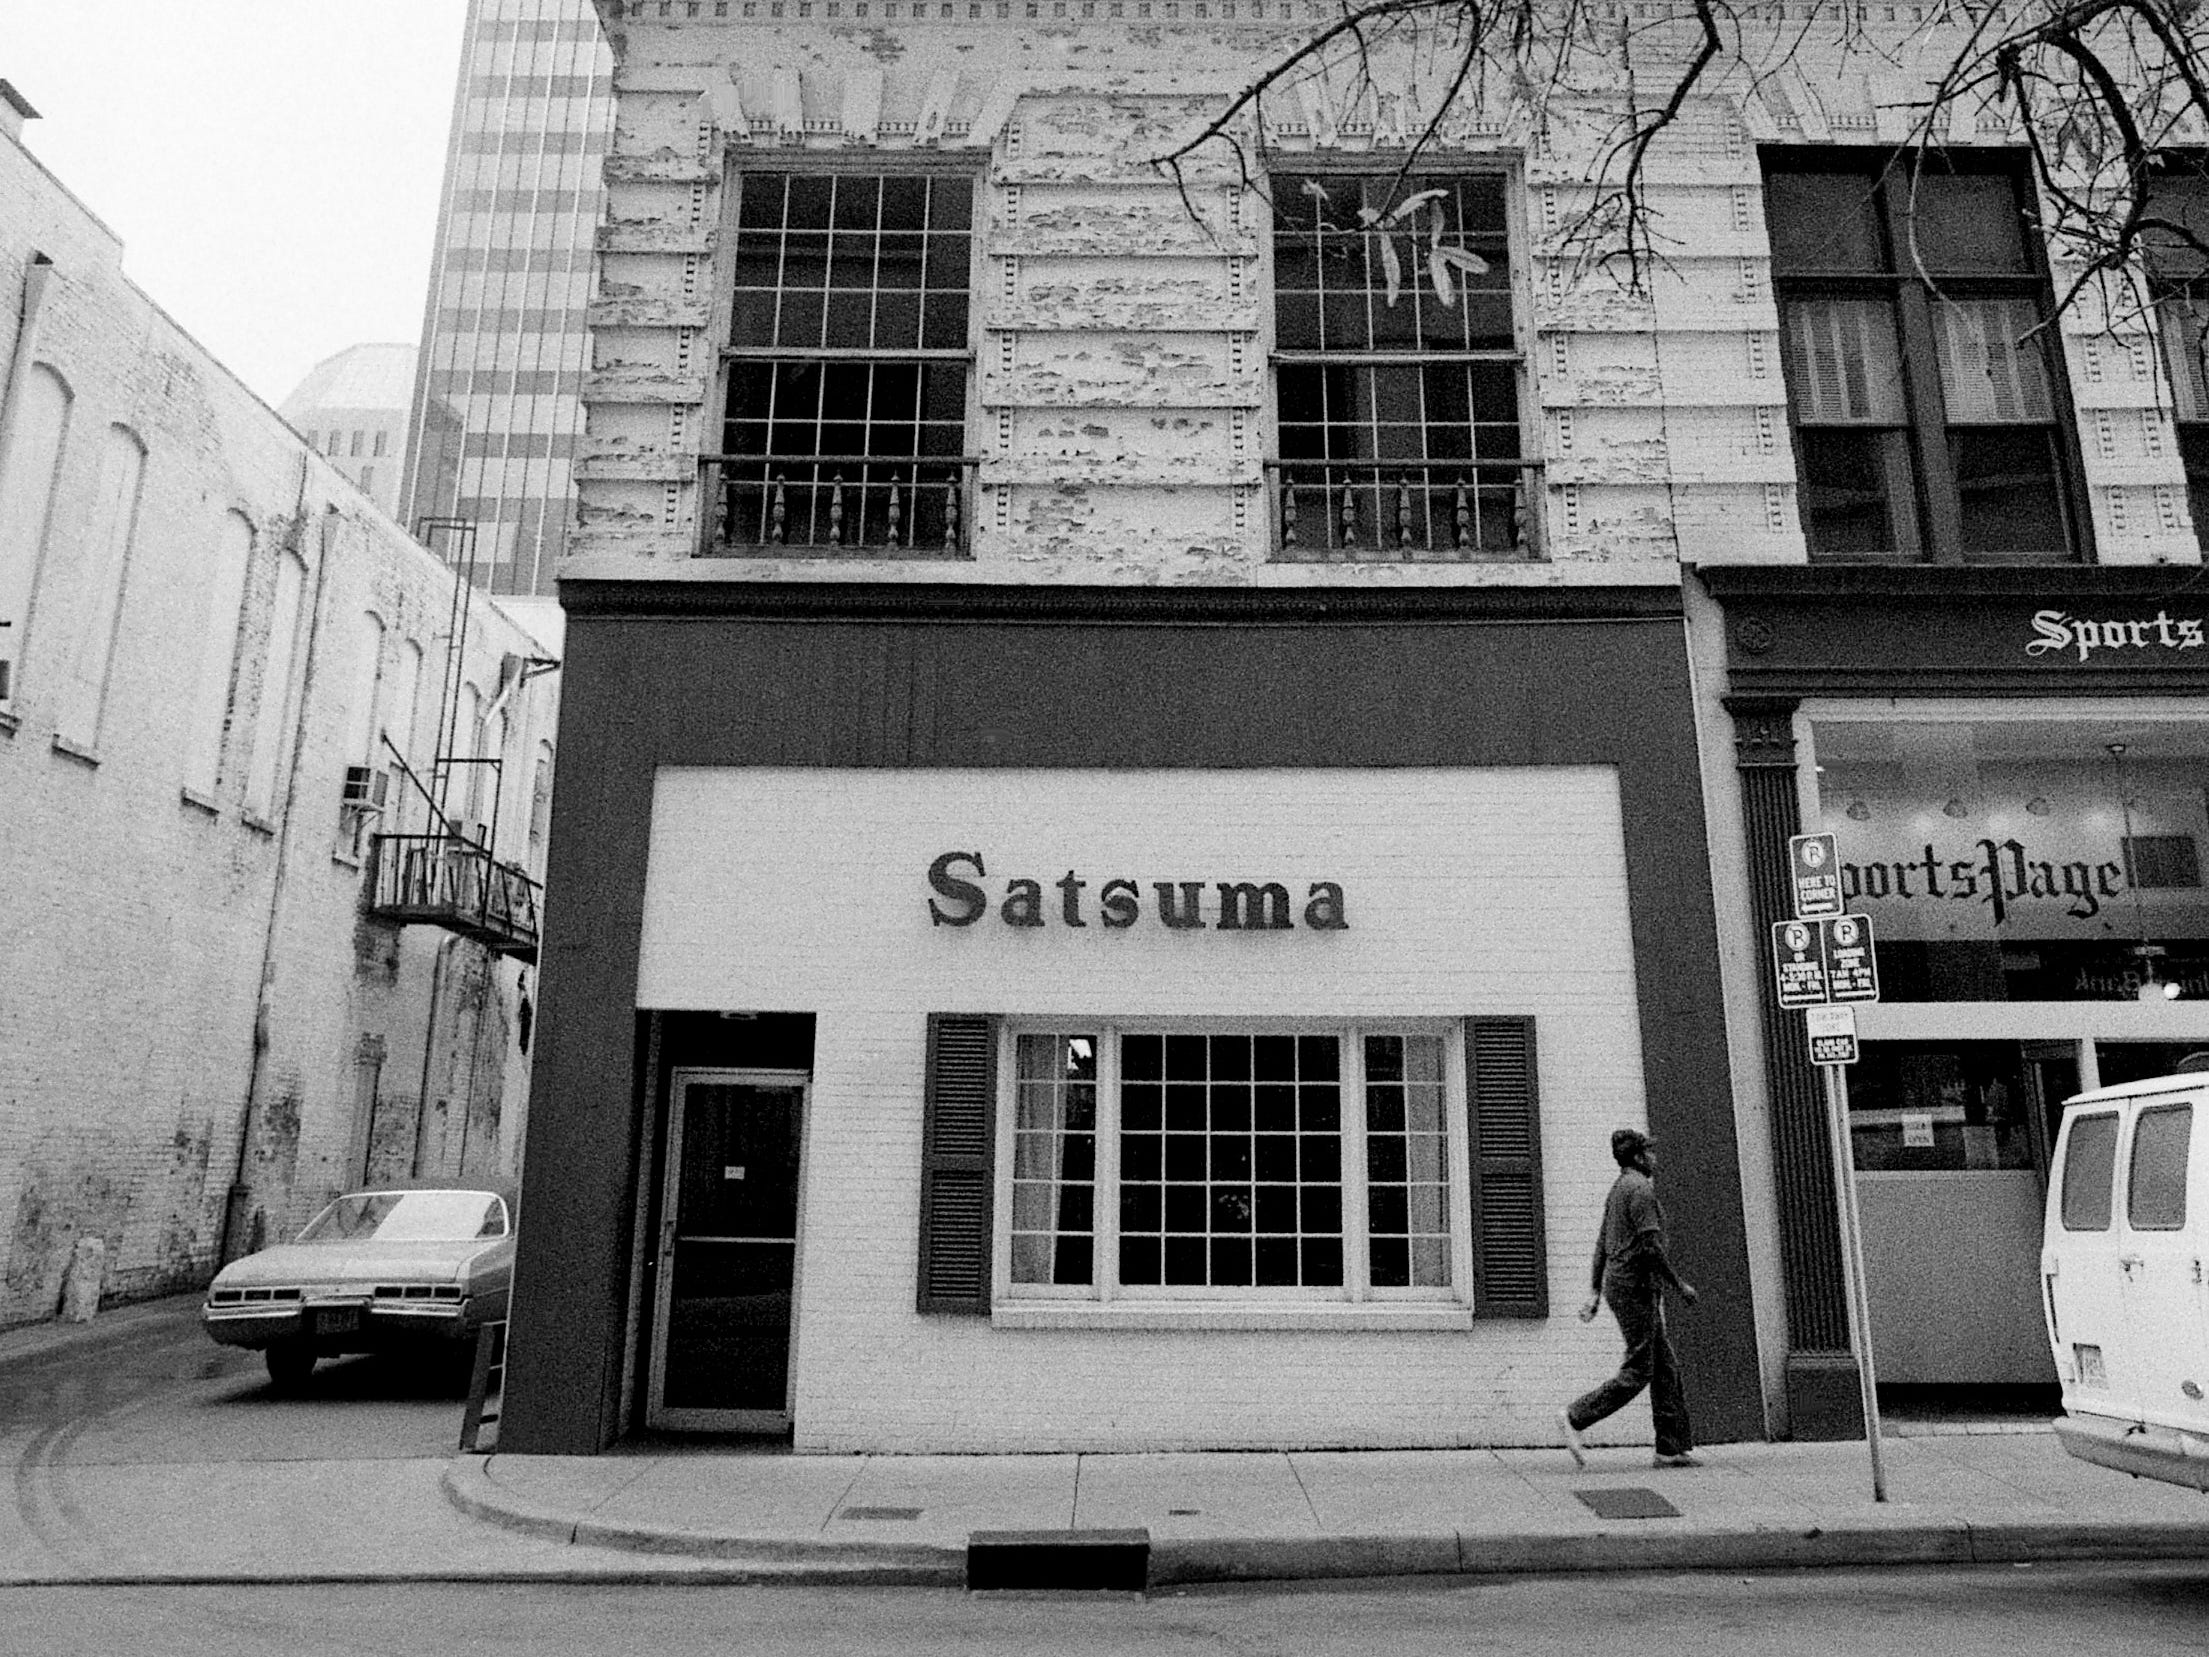 The popular lunch spot, Satsuma Tea room at 417 Union St. in downtown Nashville, is closed Oct. 30, 1985 as repairs are being made.